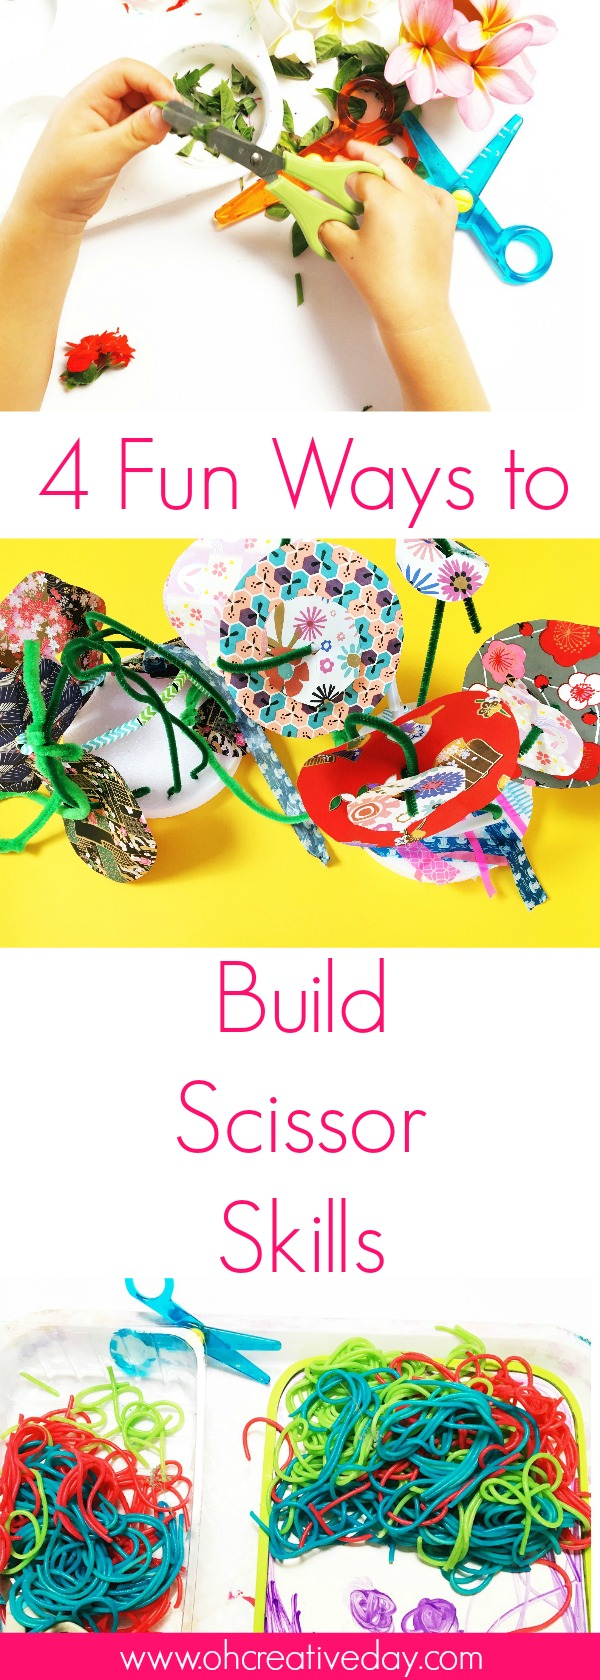 BUILDING SCISSOR SKILLS - Do you have a scissor enthusiast at your place? Here are 4 fun ways for children to build and practise scissor skills.